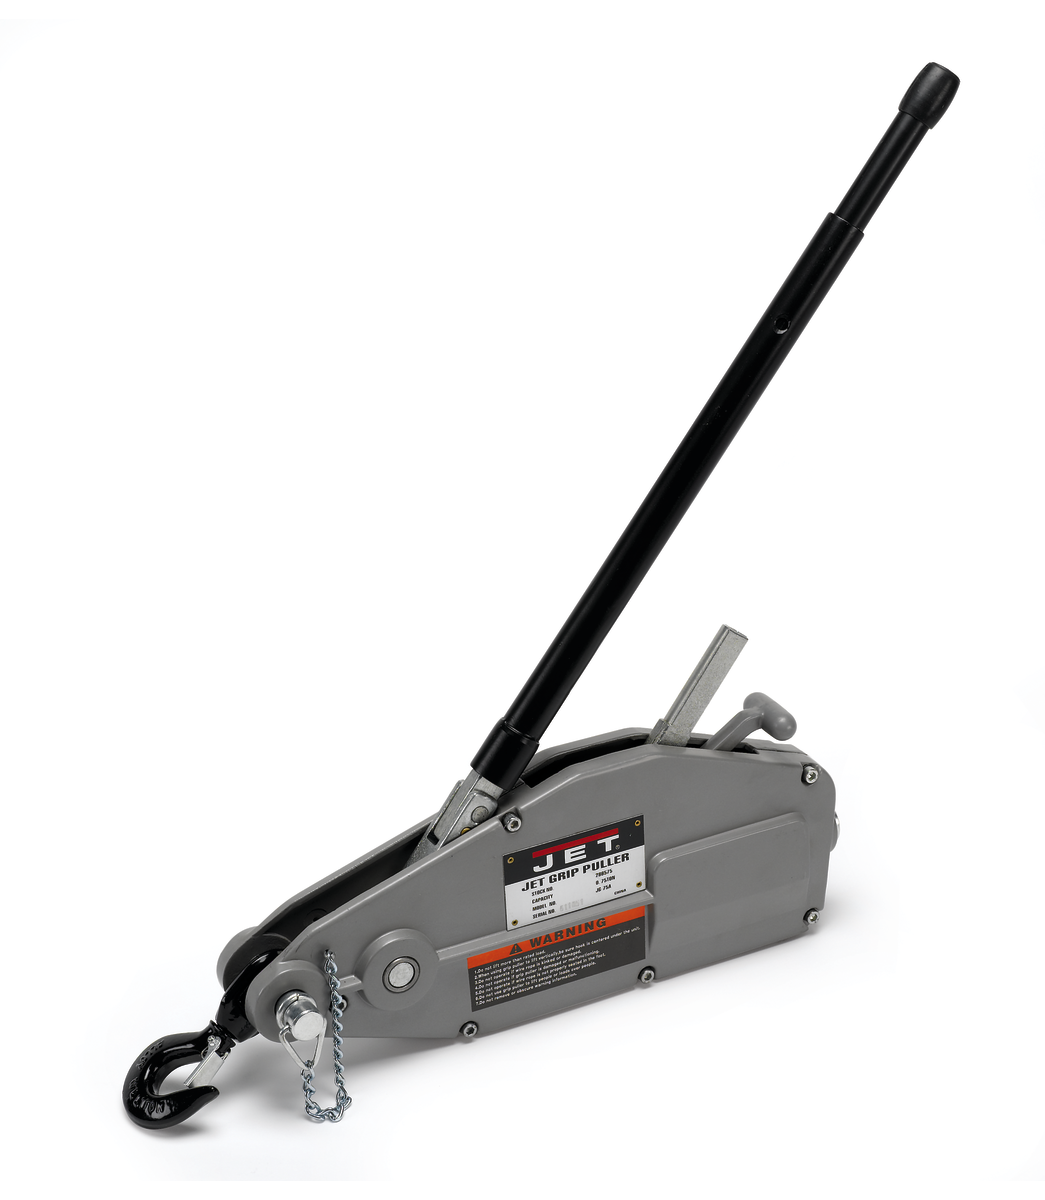 JG-75A, 3/4 Ton Grip Puller with Cable